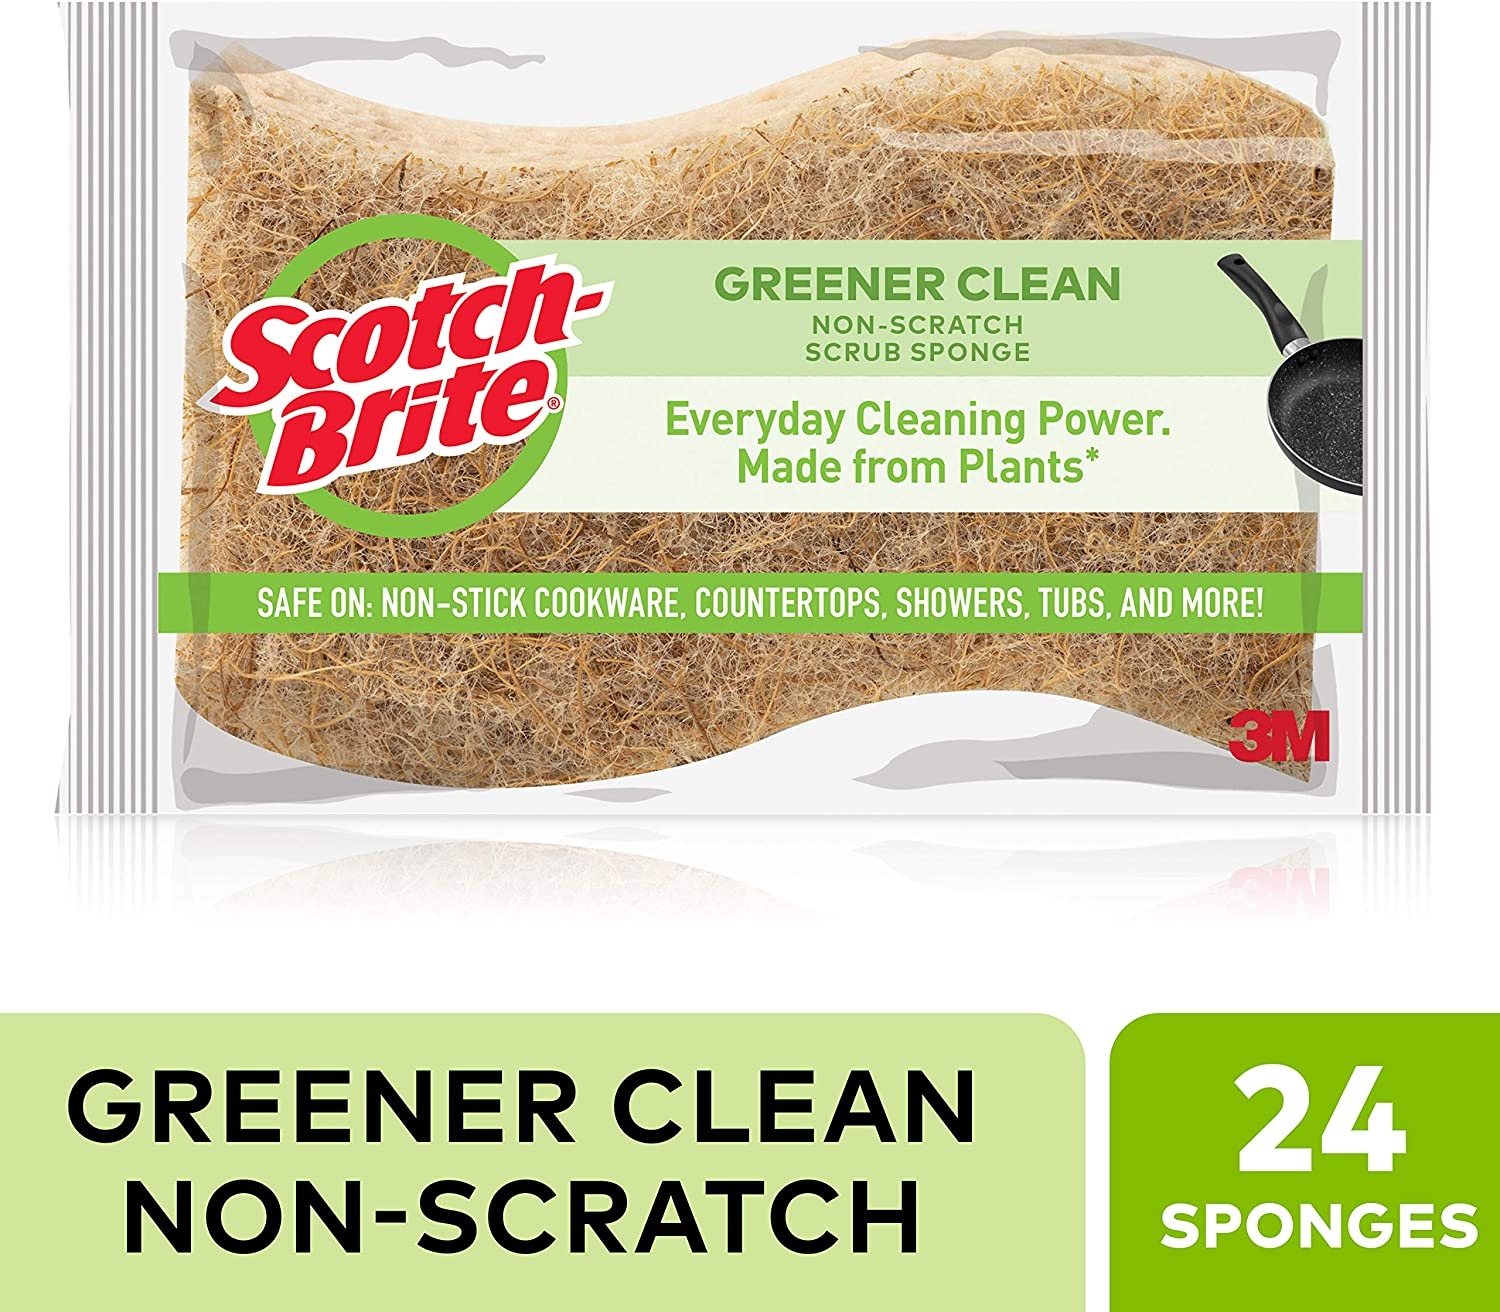 Scotch-Brite Greener Clean Natural Fiber Non-Scratch Scrub Sponge, Everyday Cleaning Power. Made from Plants, 24 Scrub Sponges